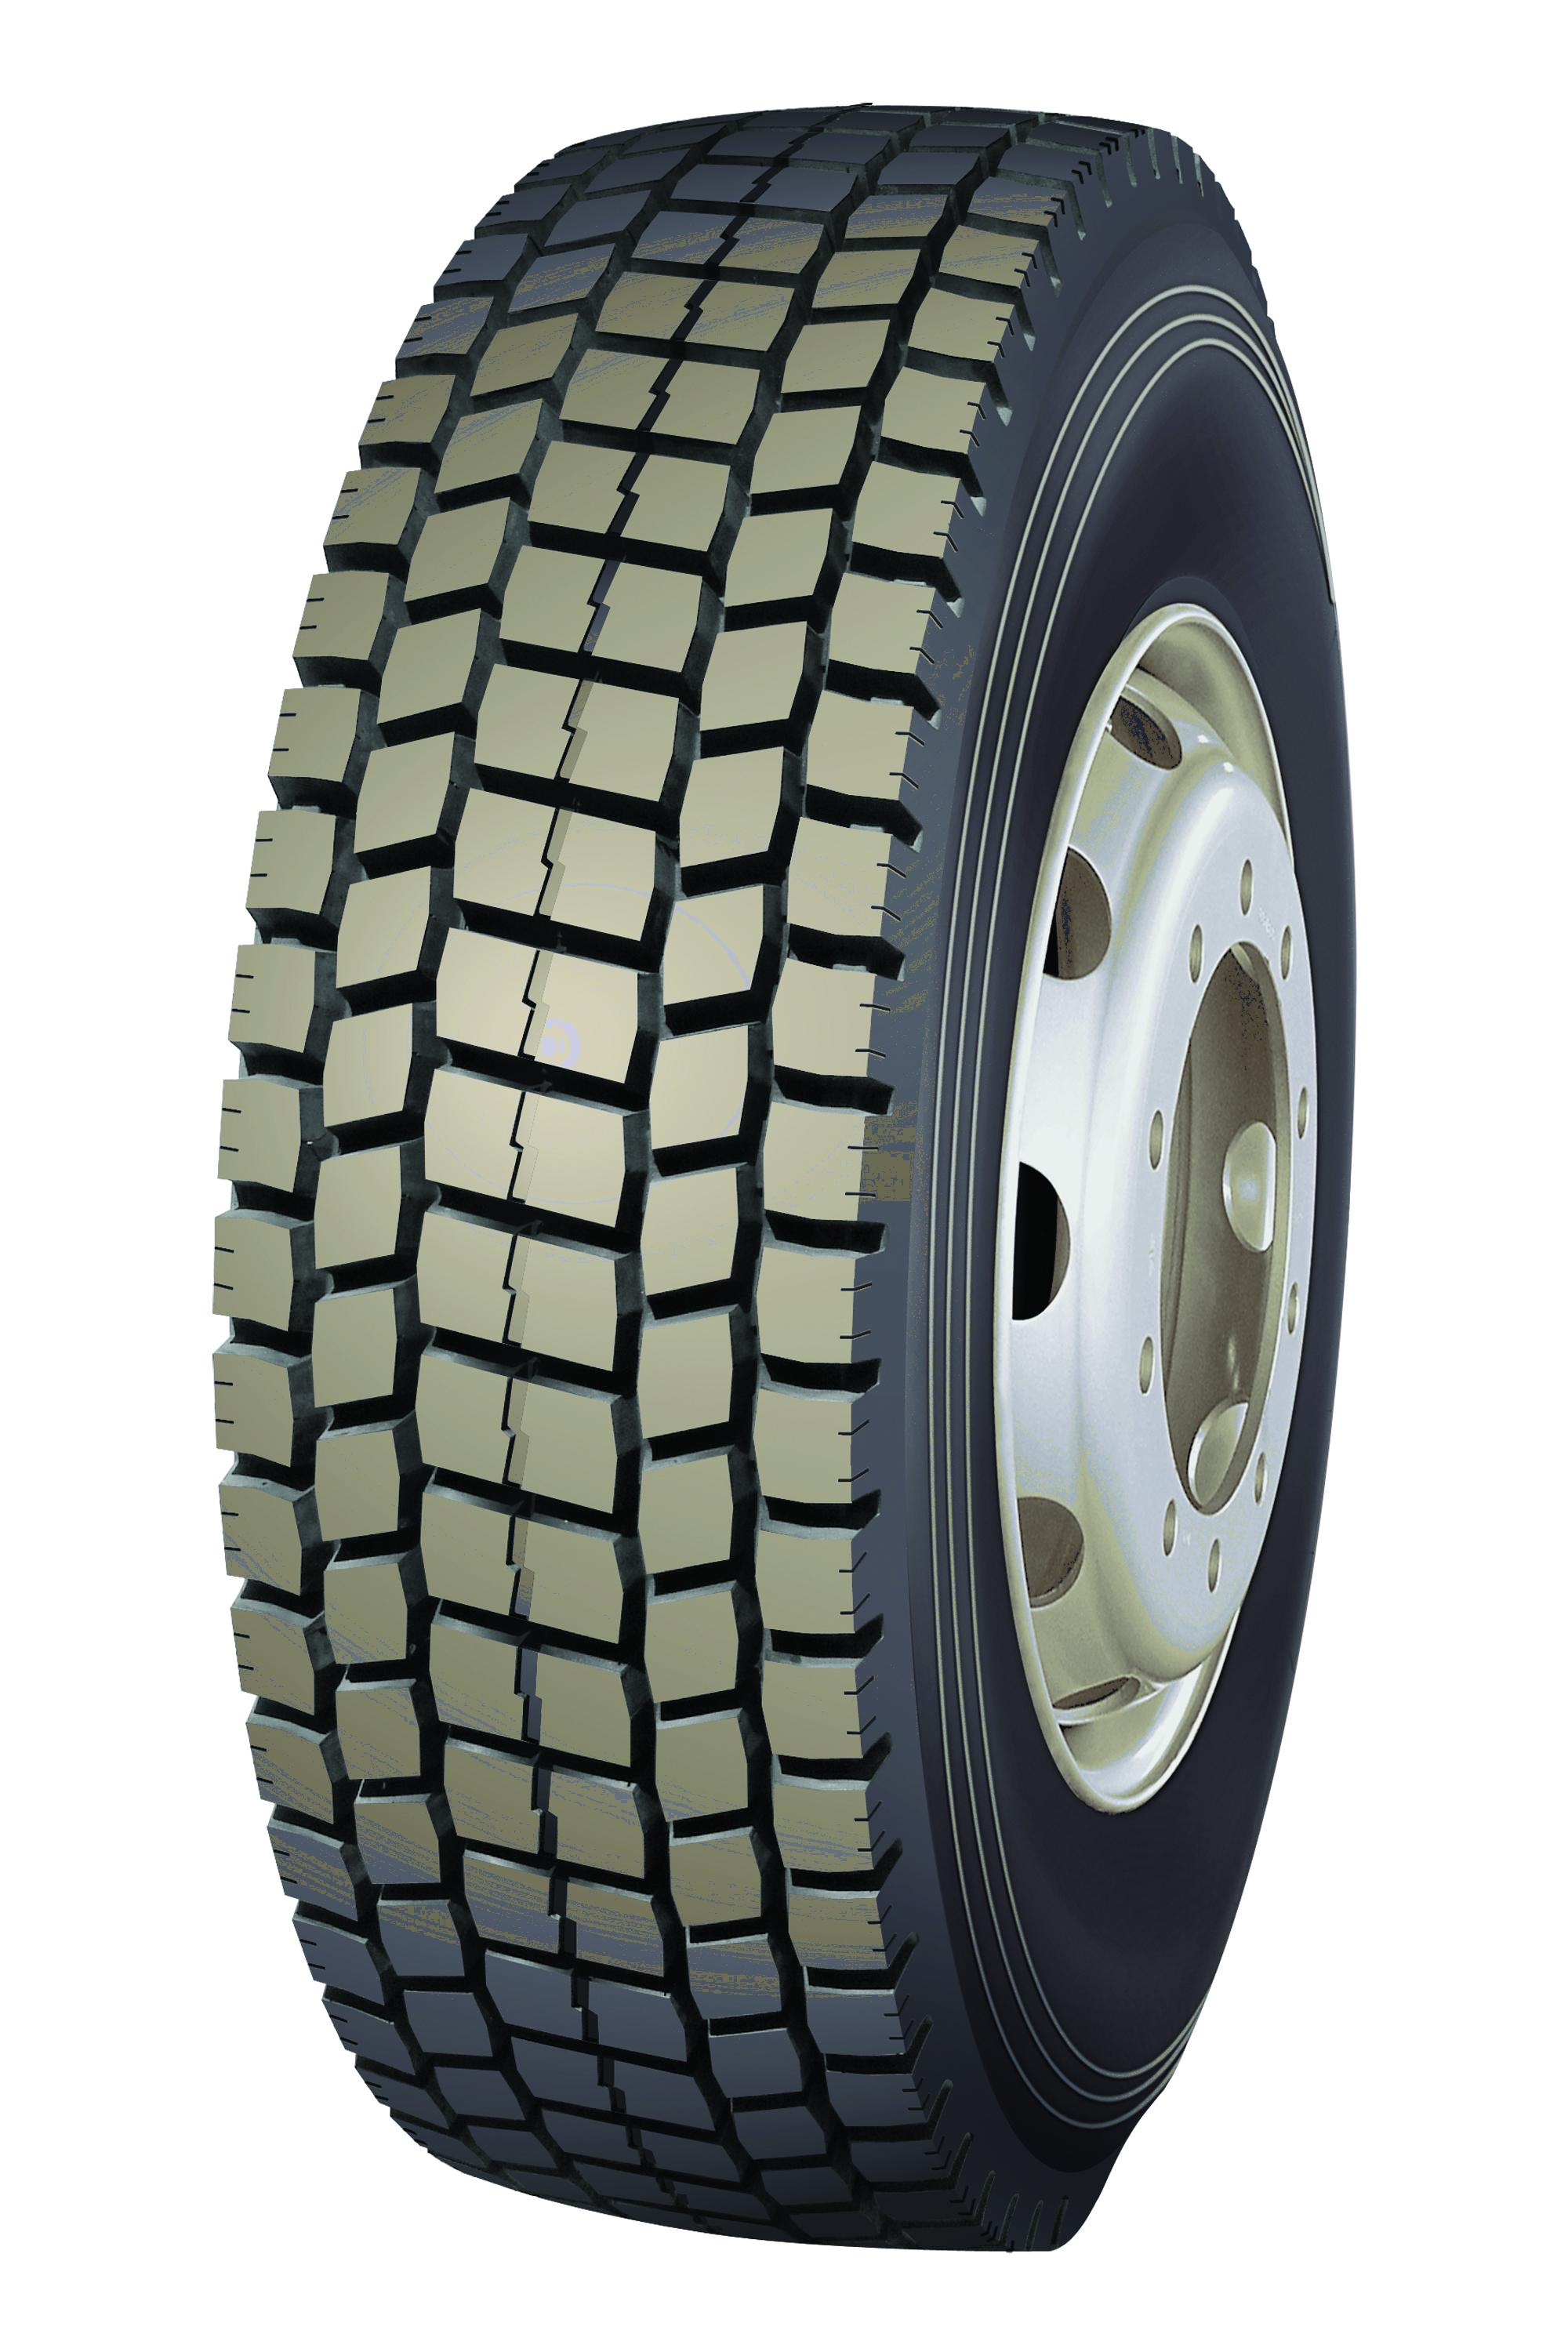 LM326 ALL STEEL RADIAL TRUCK AND BUS TYRES